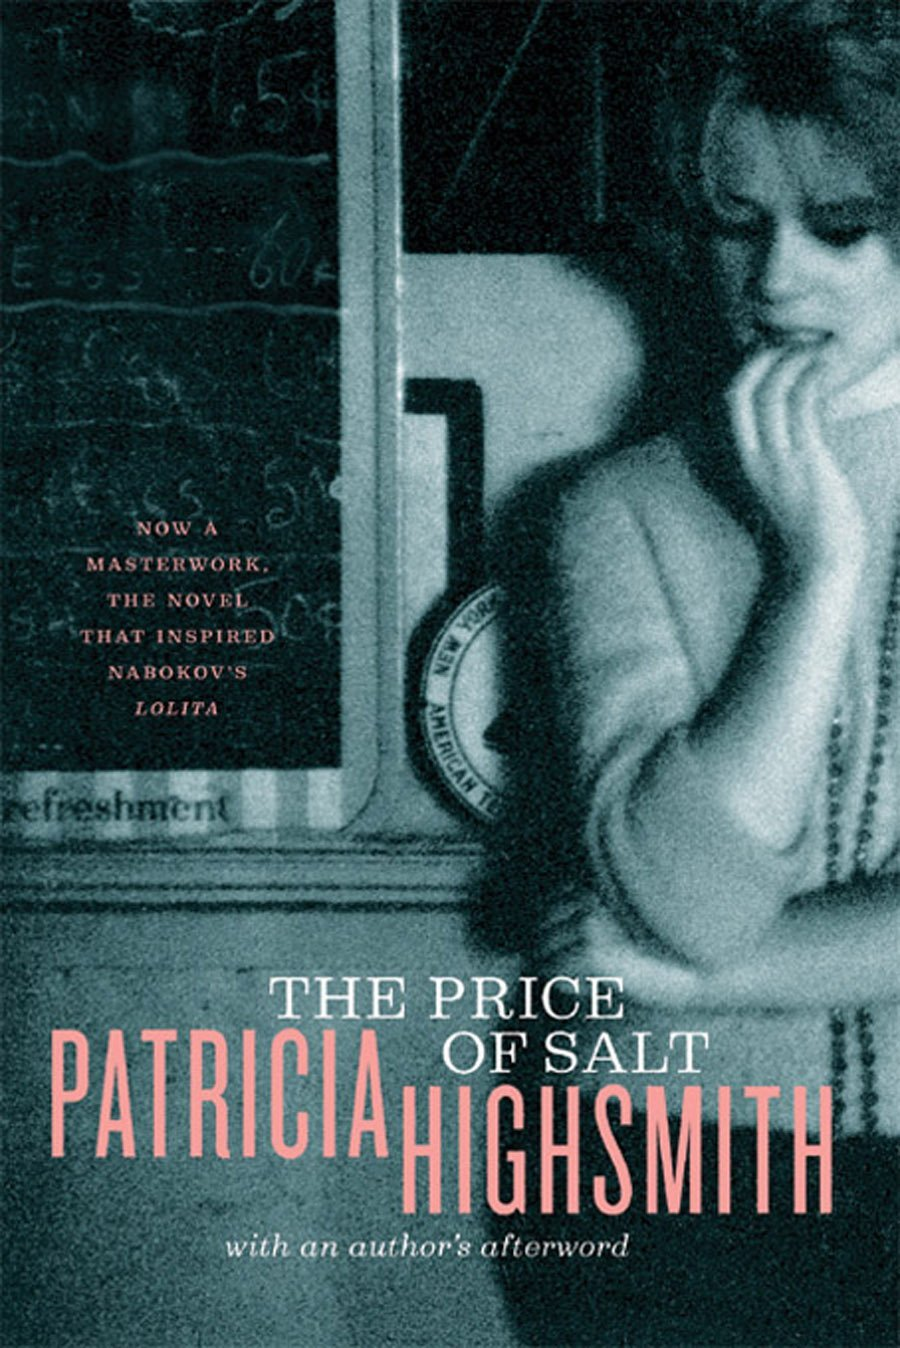 The Price of Salt Patricia Highsmith lesbian novels